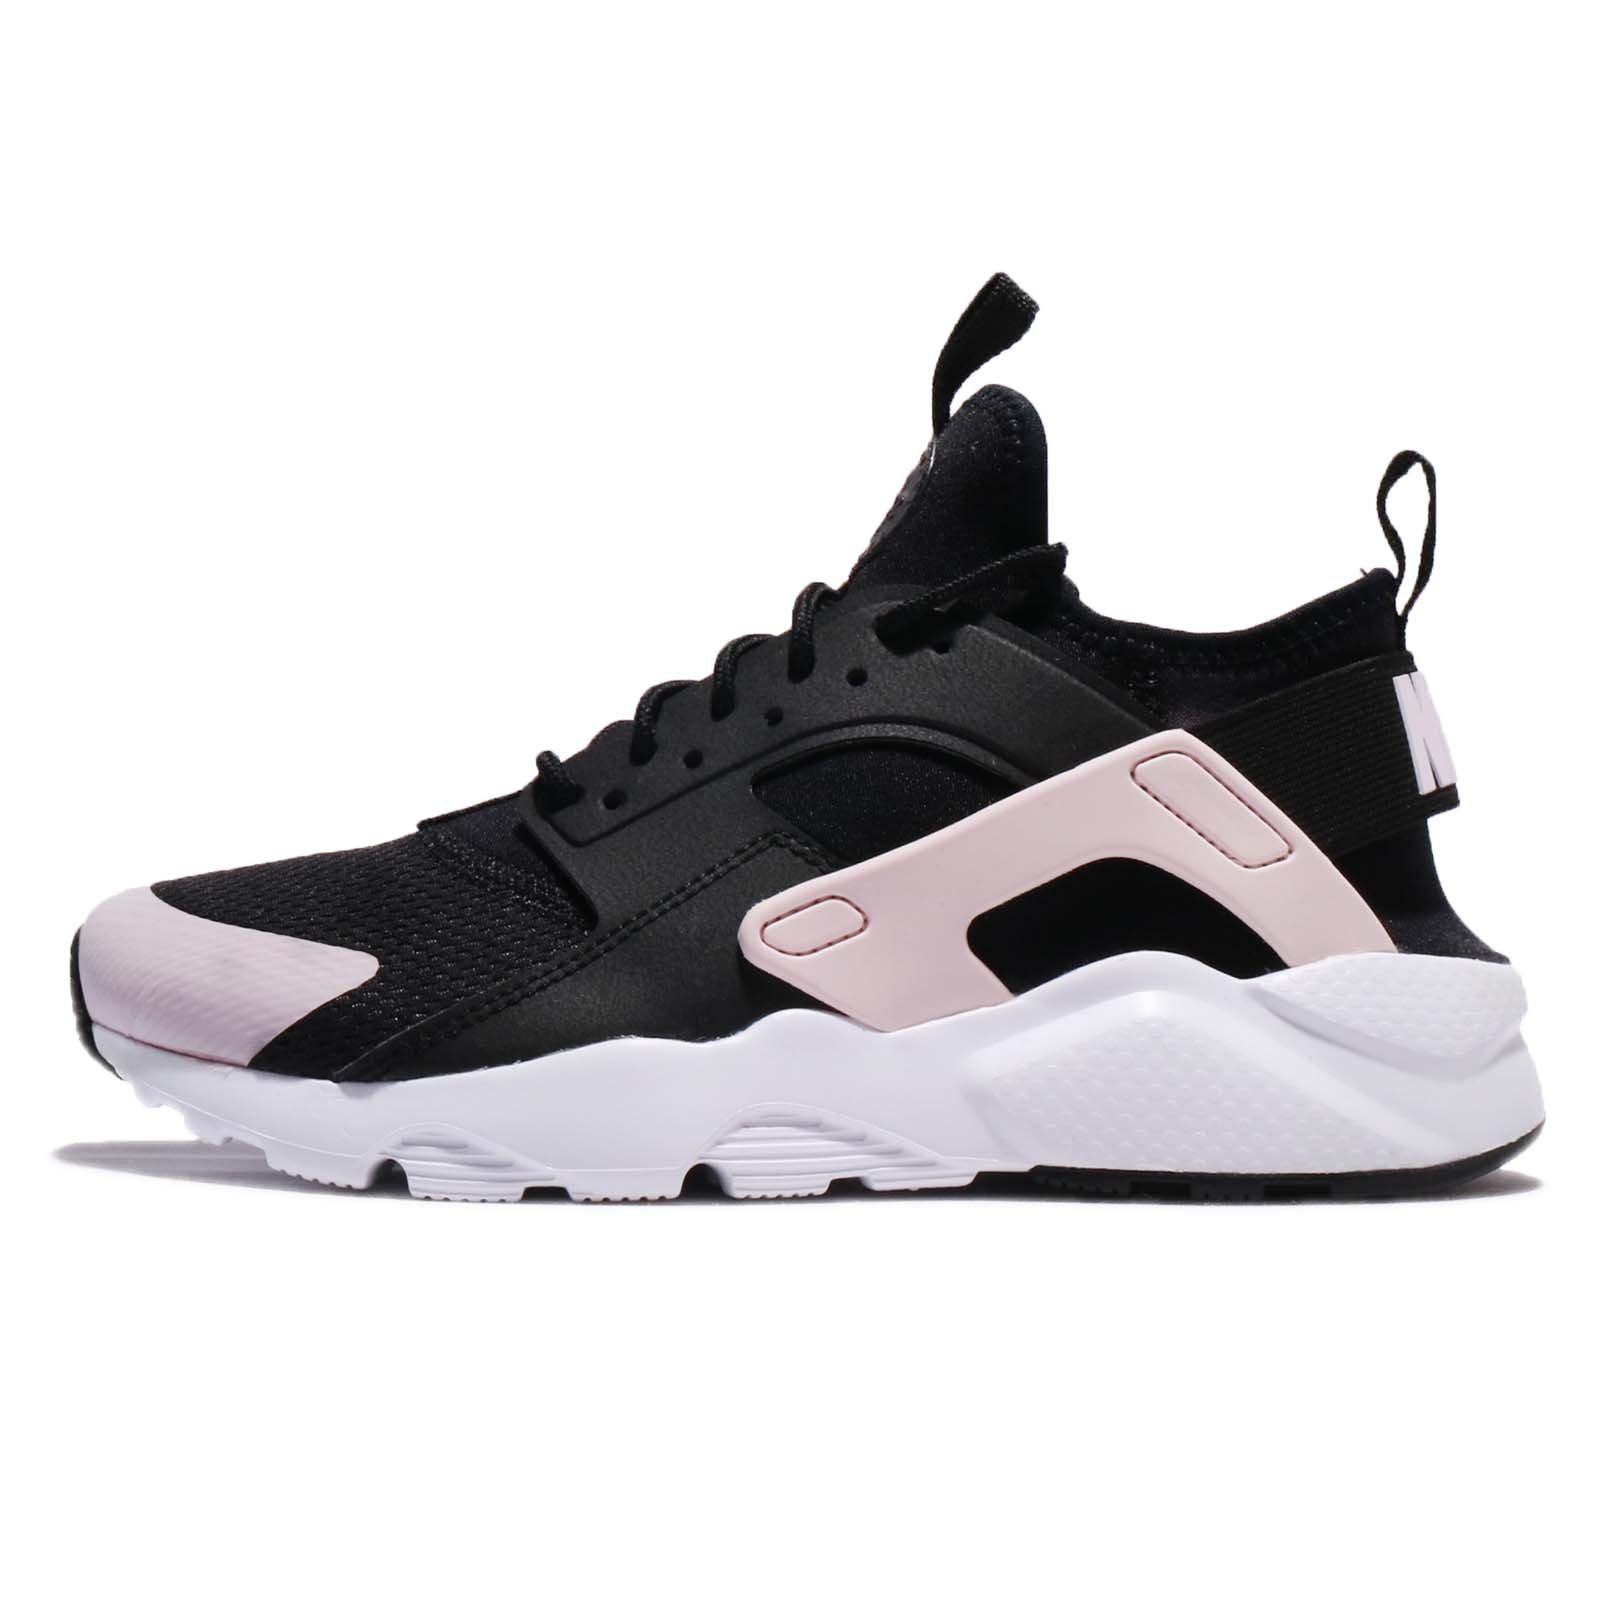 NIKE Kid's Air Huarache Run Ultra GS, Black/Barely Rose-White, Youth Size 4 by NIKE